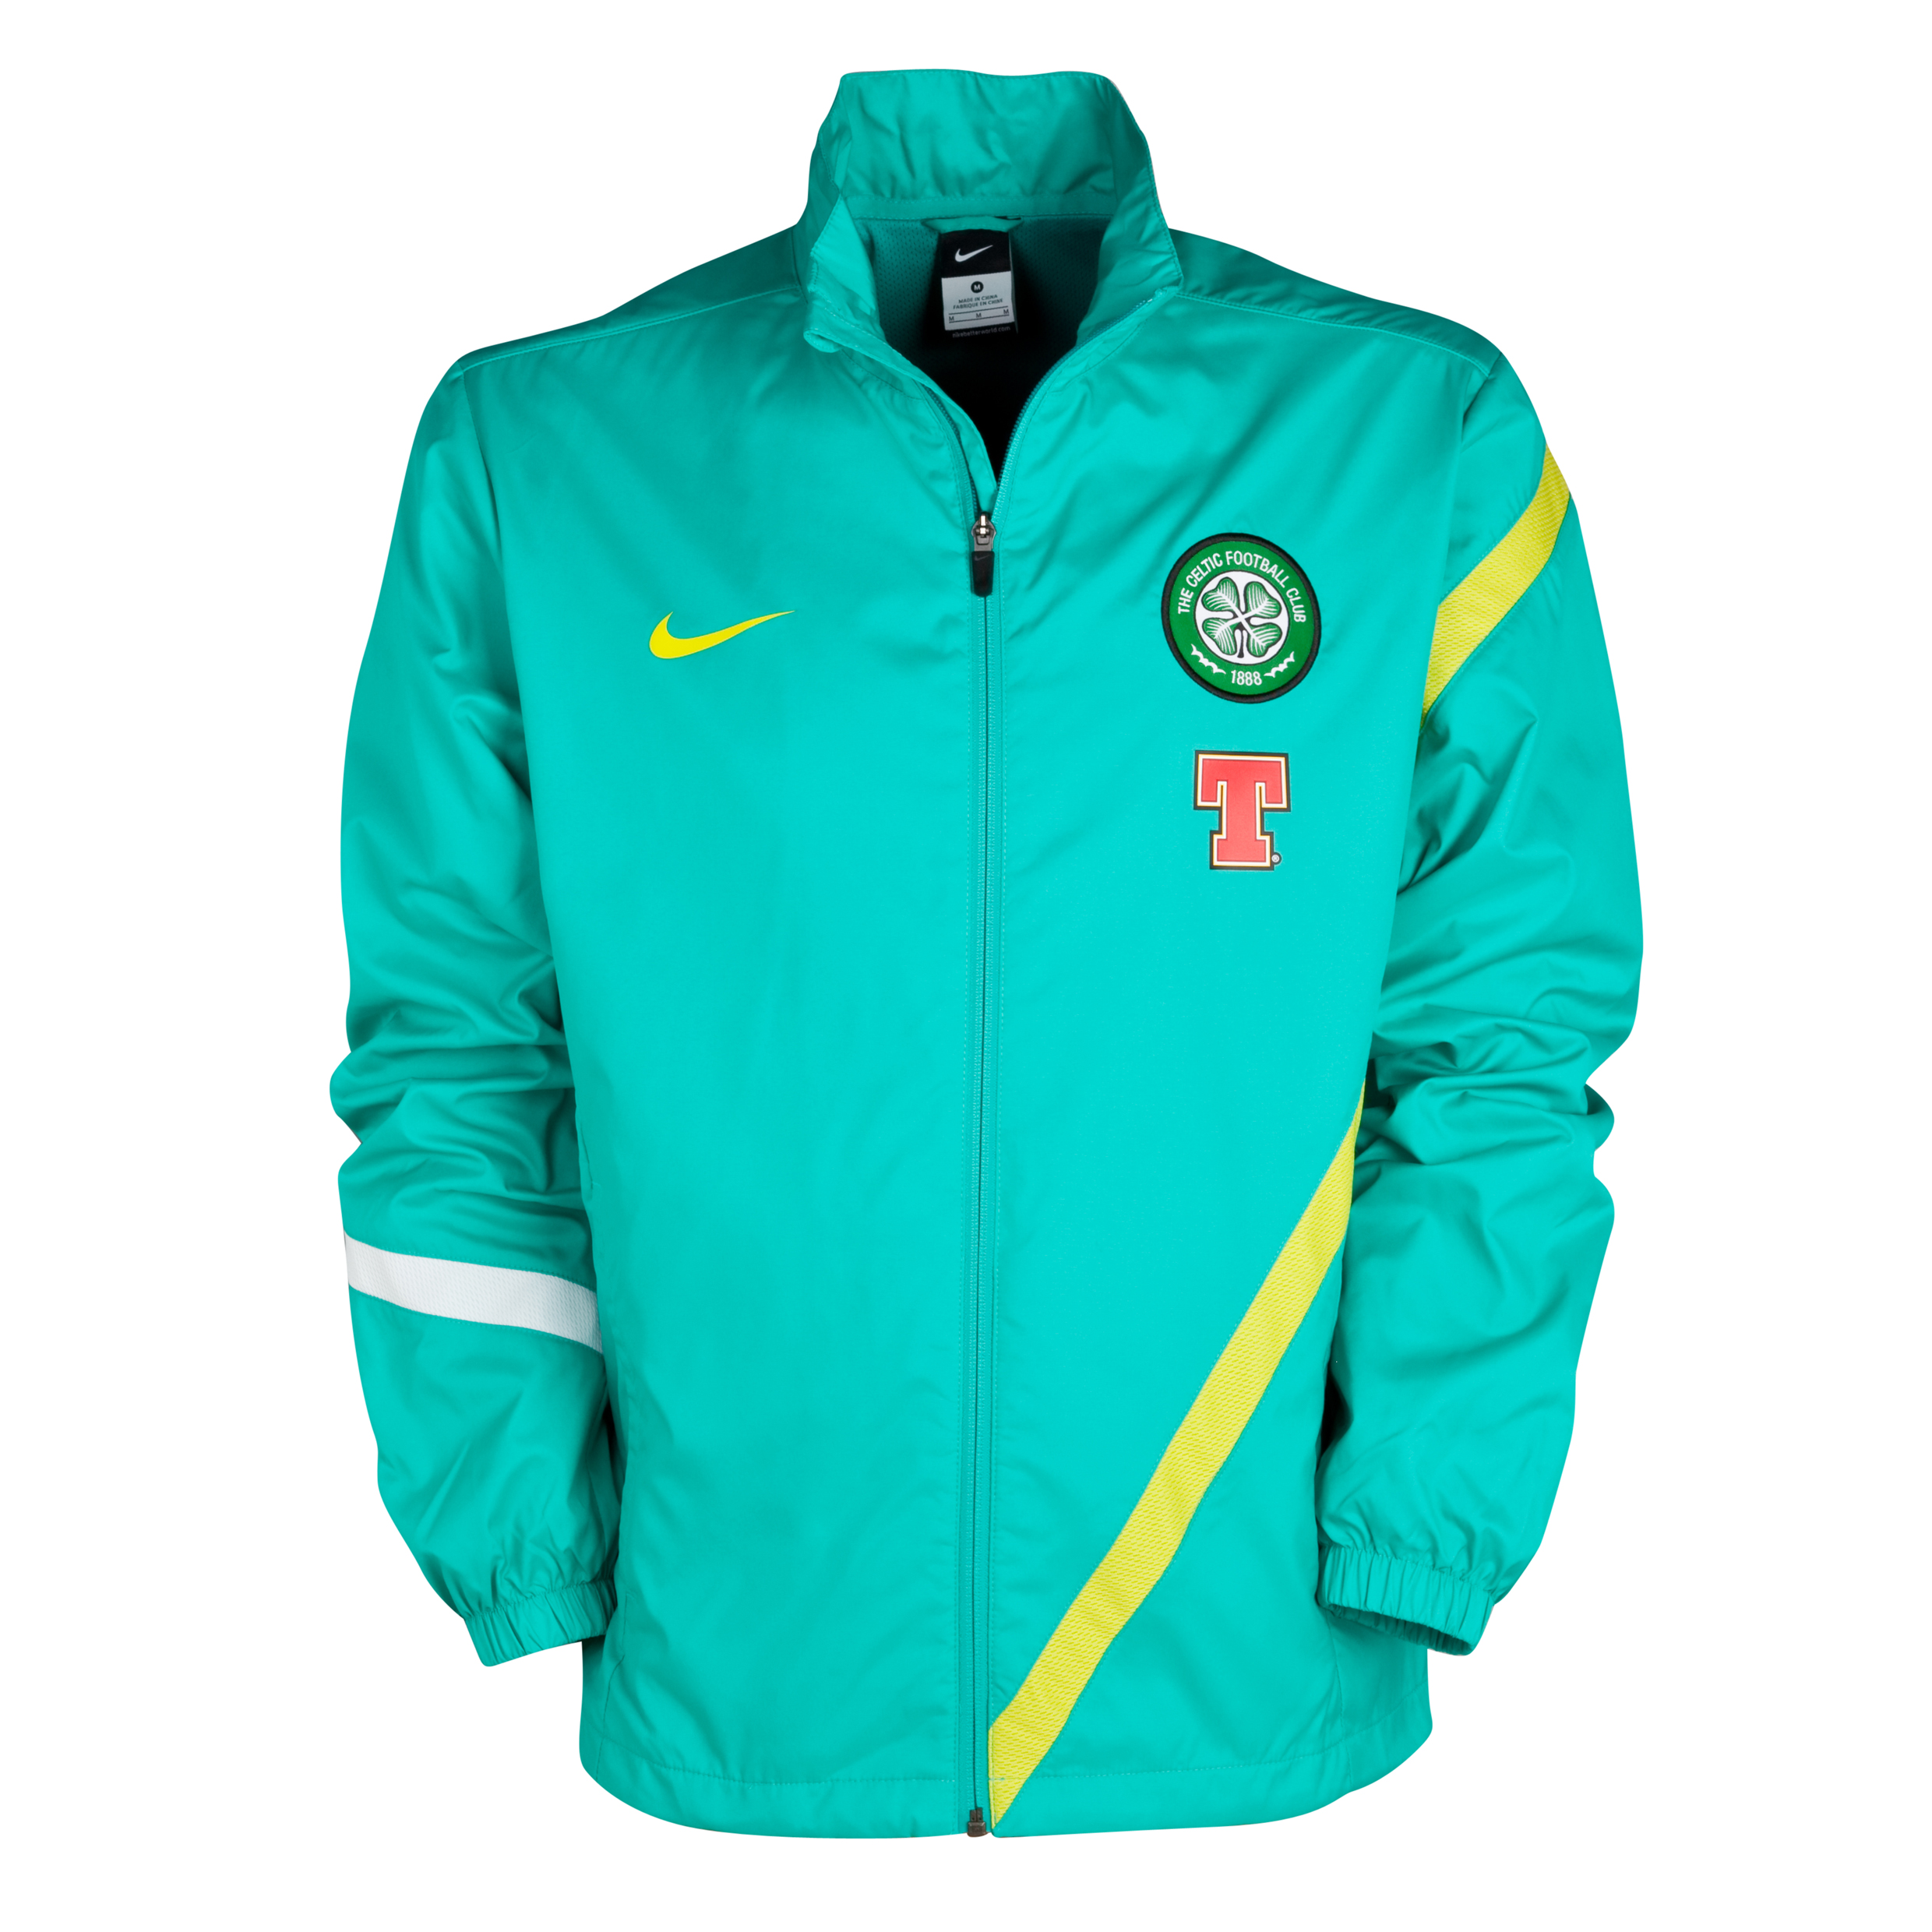 Celtic Sideline Warm Up Jacket - New Green/High Voltage/High Voltage